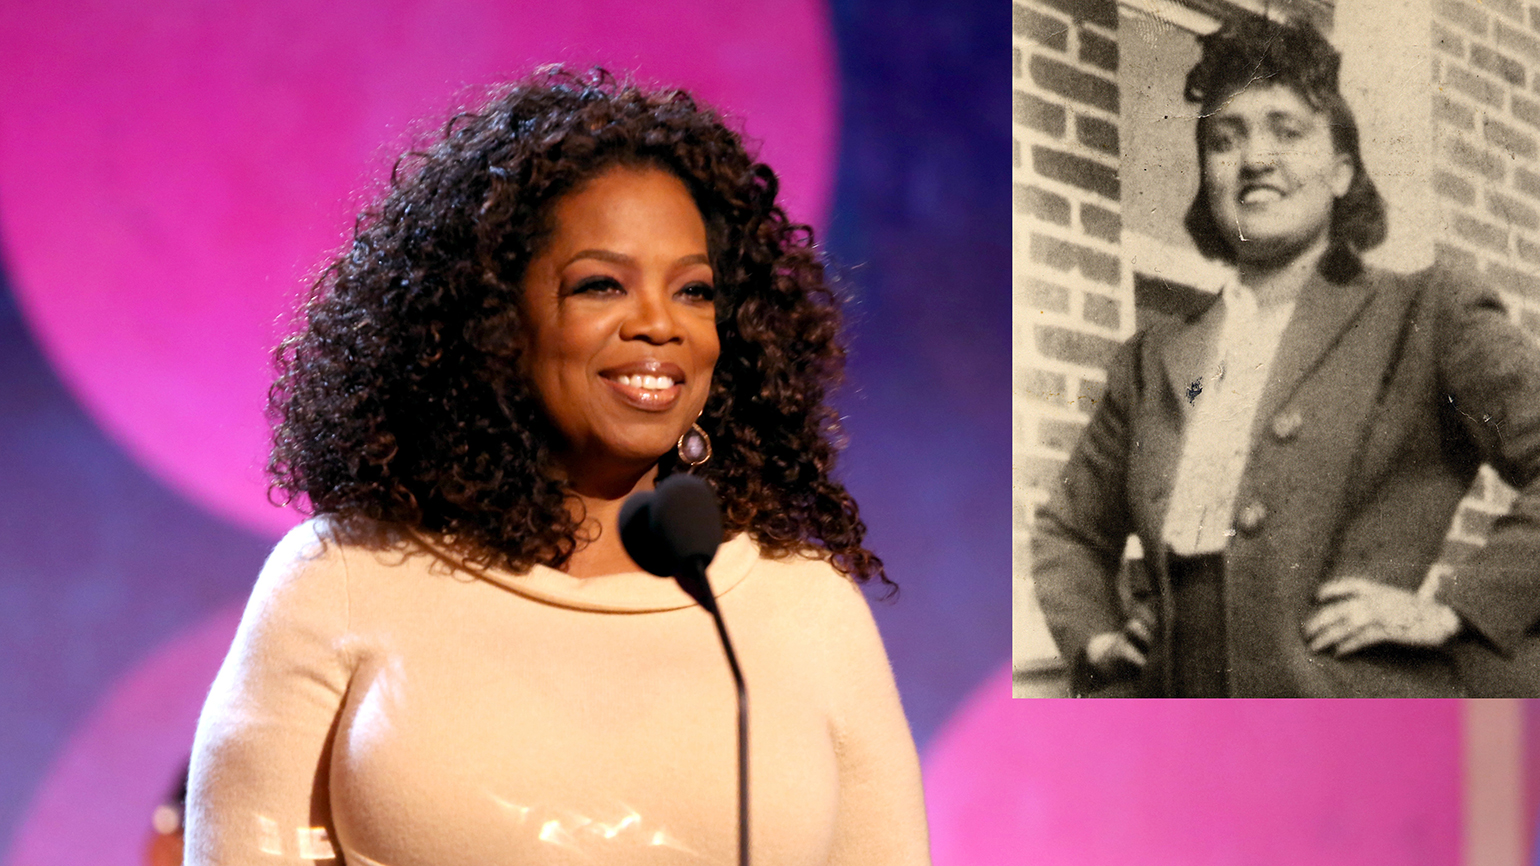 Oprah Winfrey and Henrietta Lacks, The Immortal Life of Henrietta Lacks